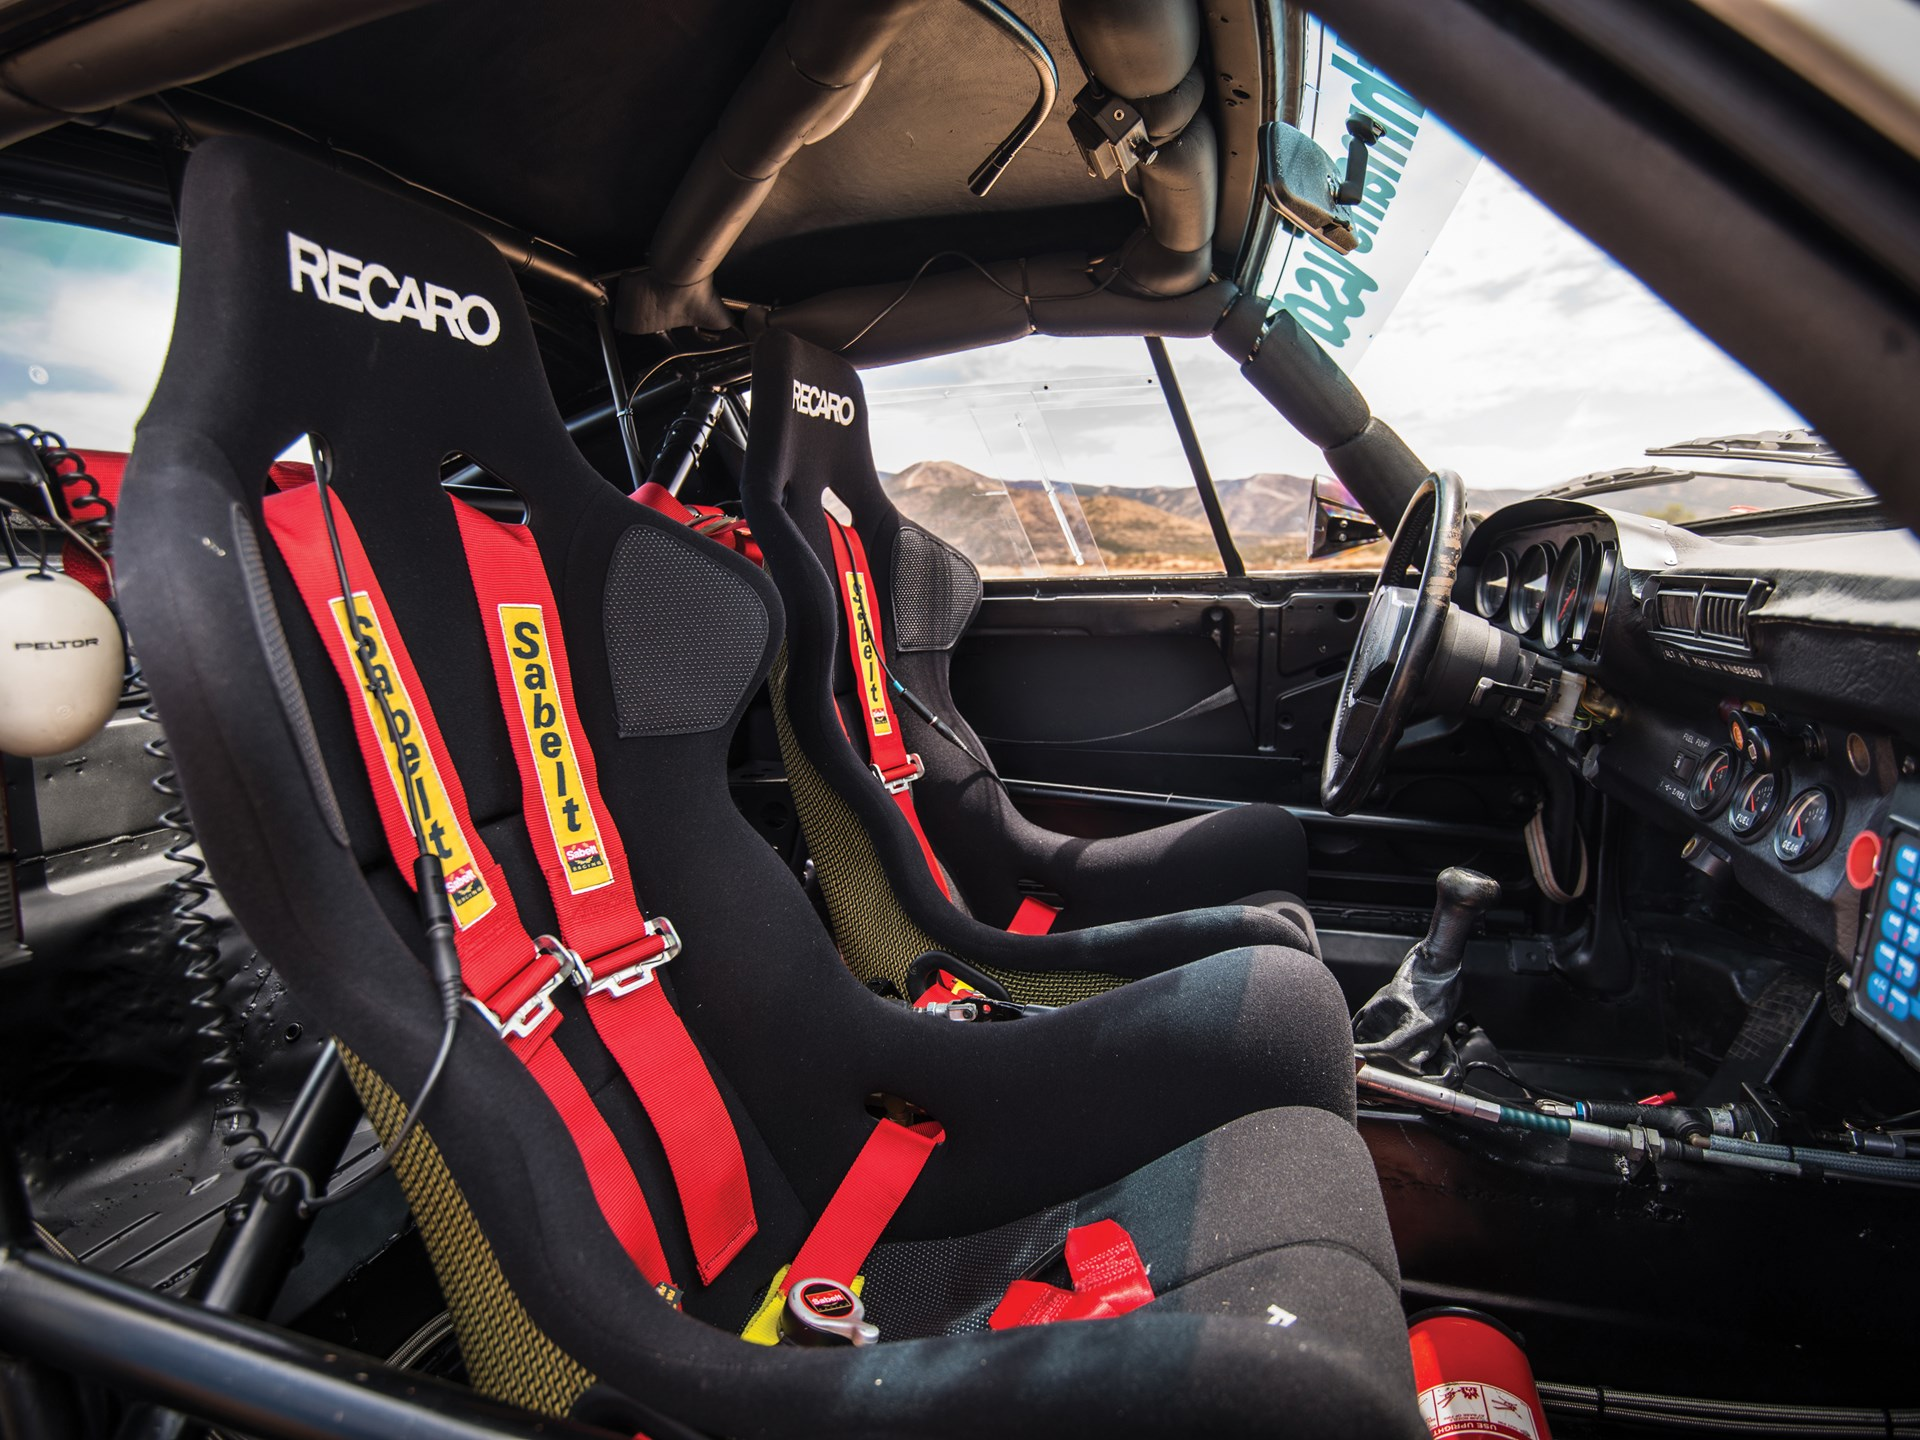 1985 Porsche 959 Paris-Dakar interior seats